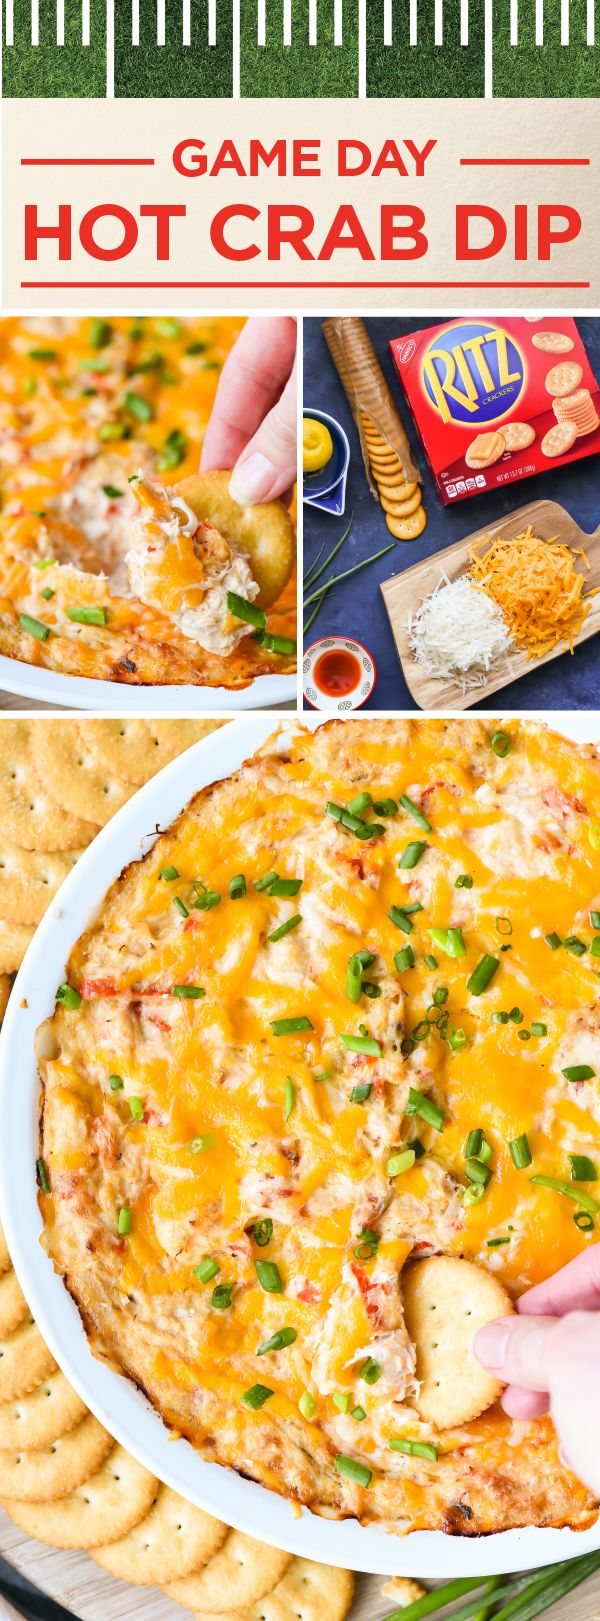 Irresistibly creamy, bold in flavor, with a sweet and tangy kick—this Hot Crab Dip has it all! To get delicious snacks in play, make sure to serve this combination of cream cheese, melted cheddar, crab meat, and hot peppers with RITZ Crackers for a game-winning appetizer idea. Before kickoff, head to Kroger to score all the ingredients you'll need to make your game day menu the best yet!